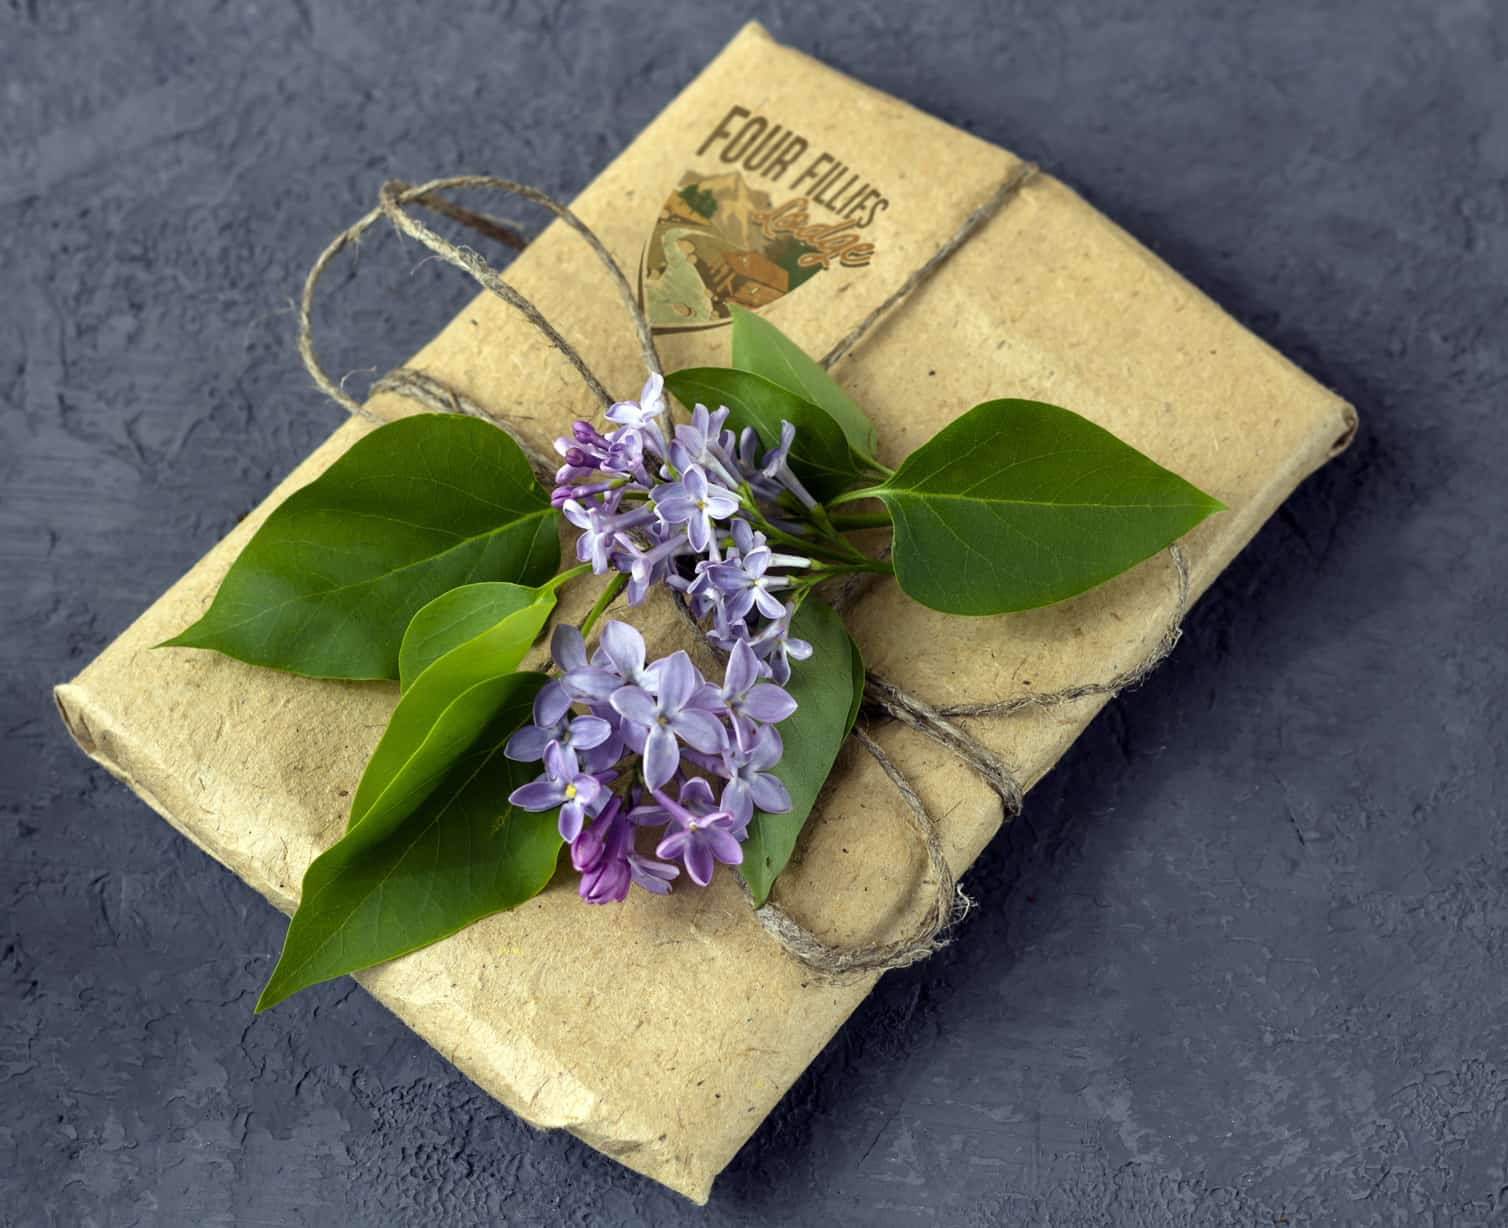 A small craft paper package tied with twine and small purple flowers